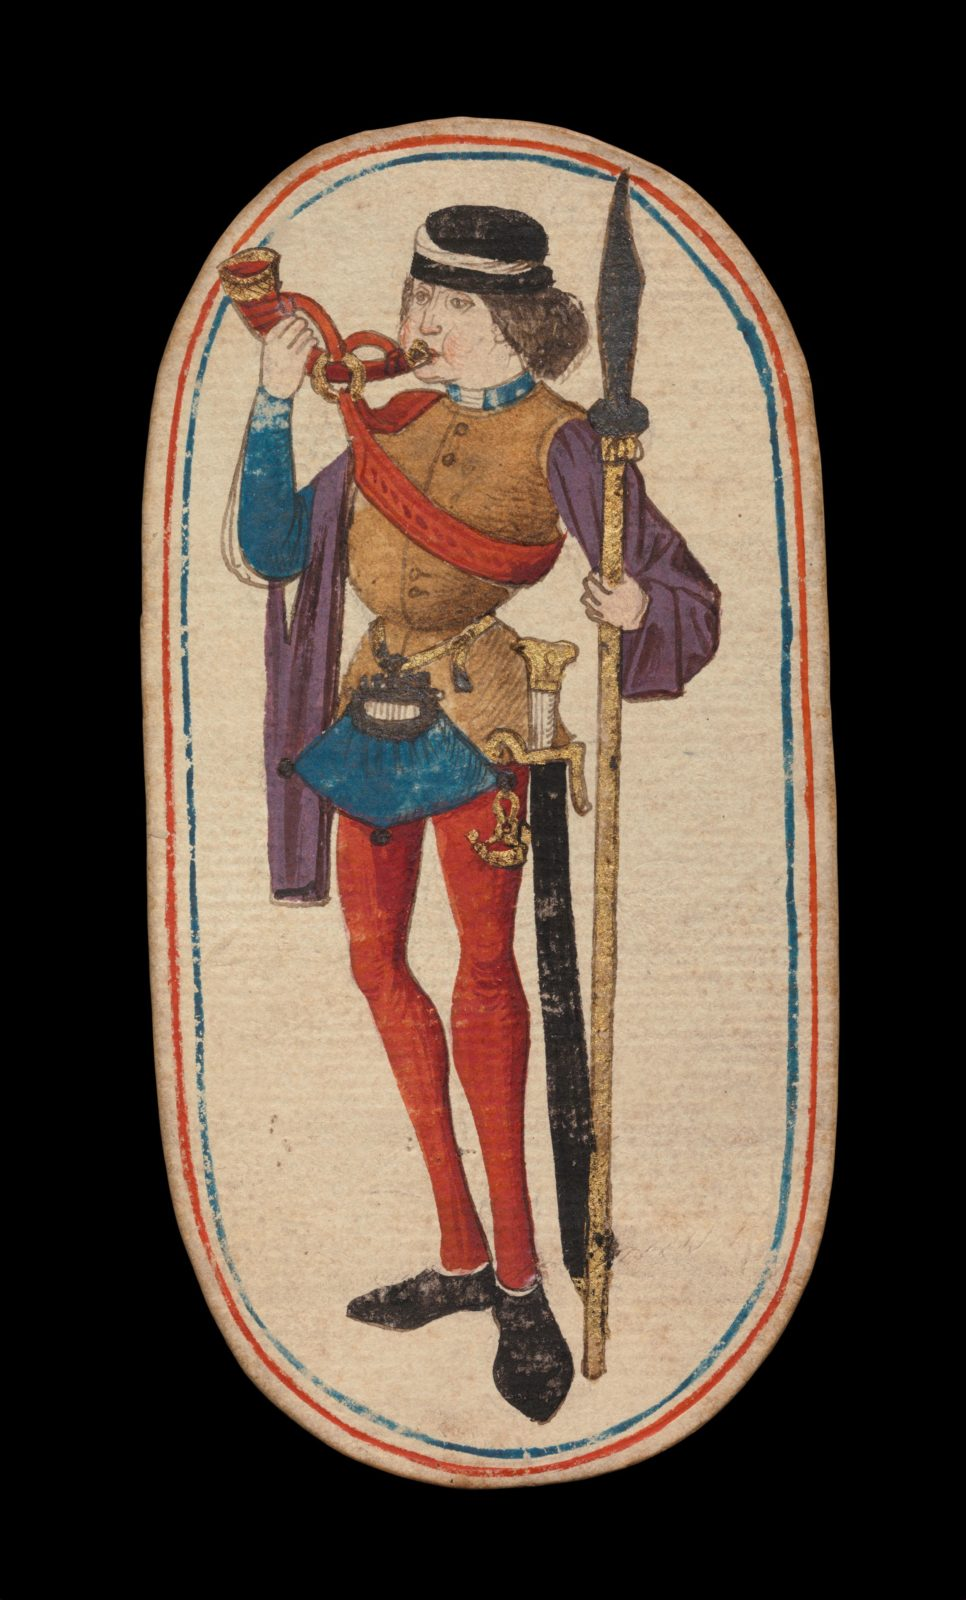 Knave of Horns, from The Cloisters Playing Cards